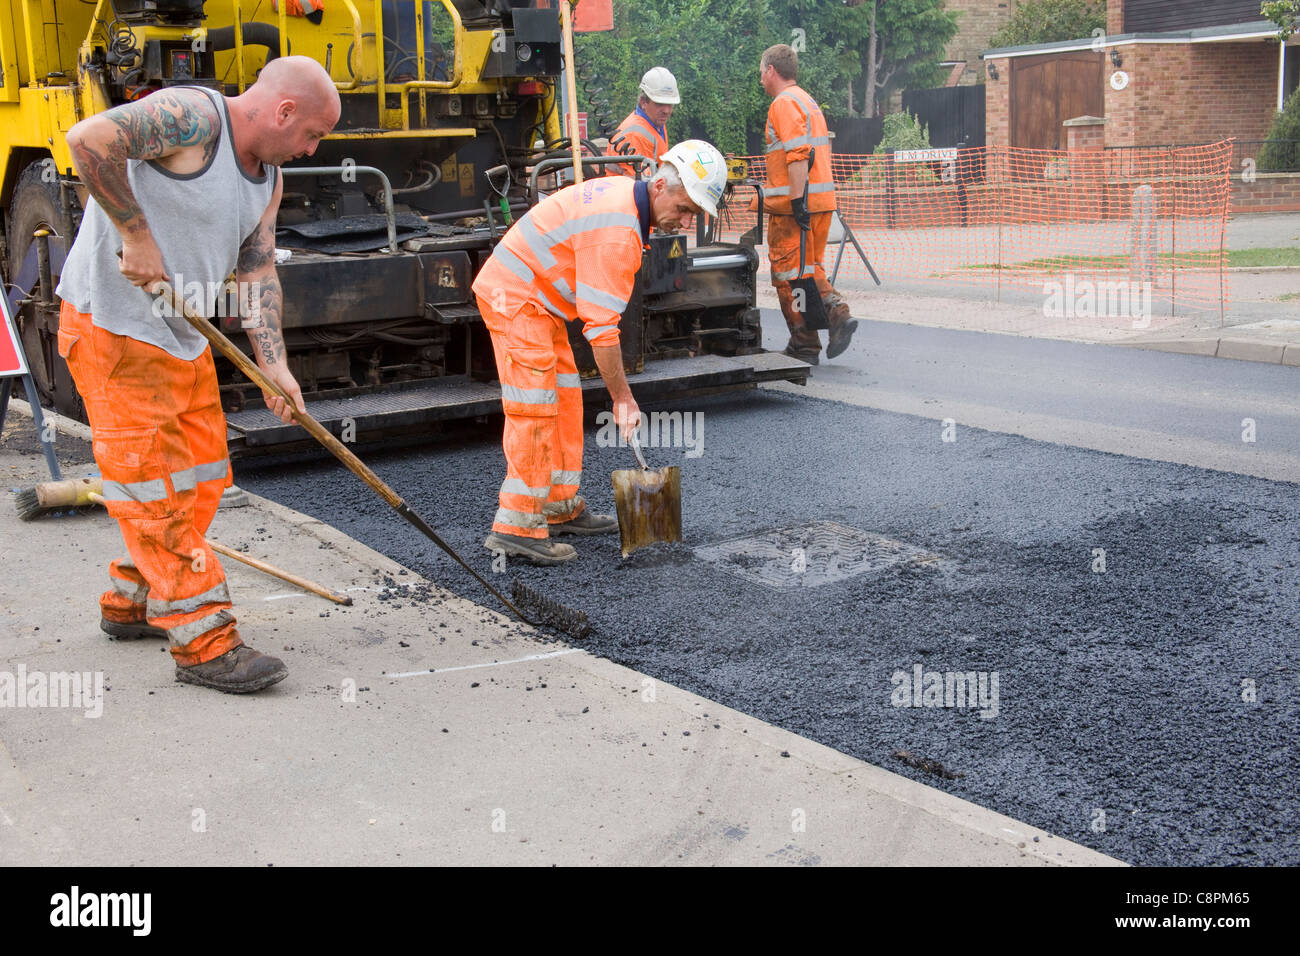 Workmen  cleaning surface of manhole cover and leveling tarmac, using shovel and rake, after road surface has been - Stock Image